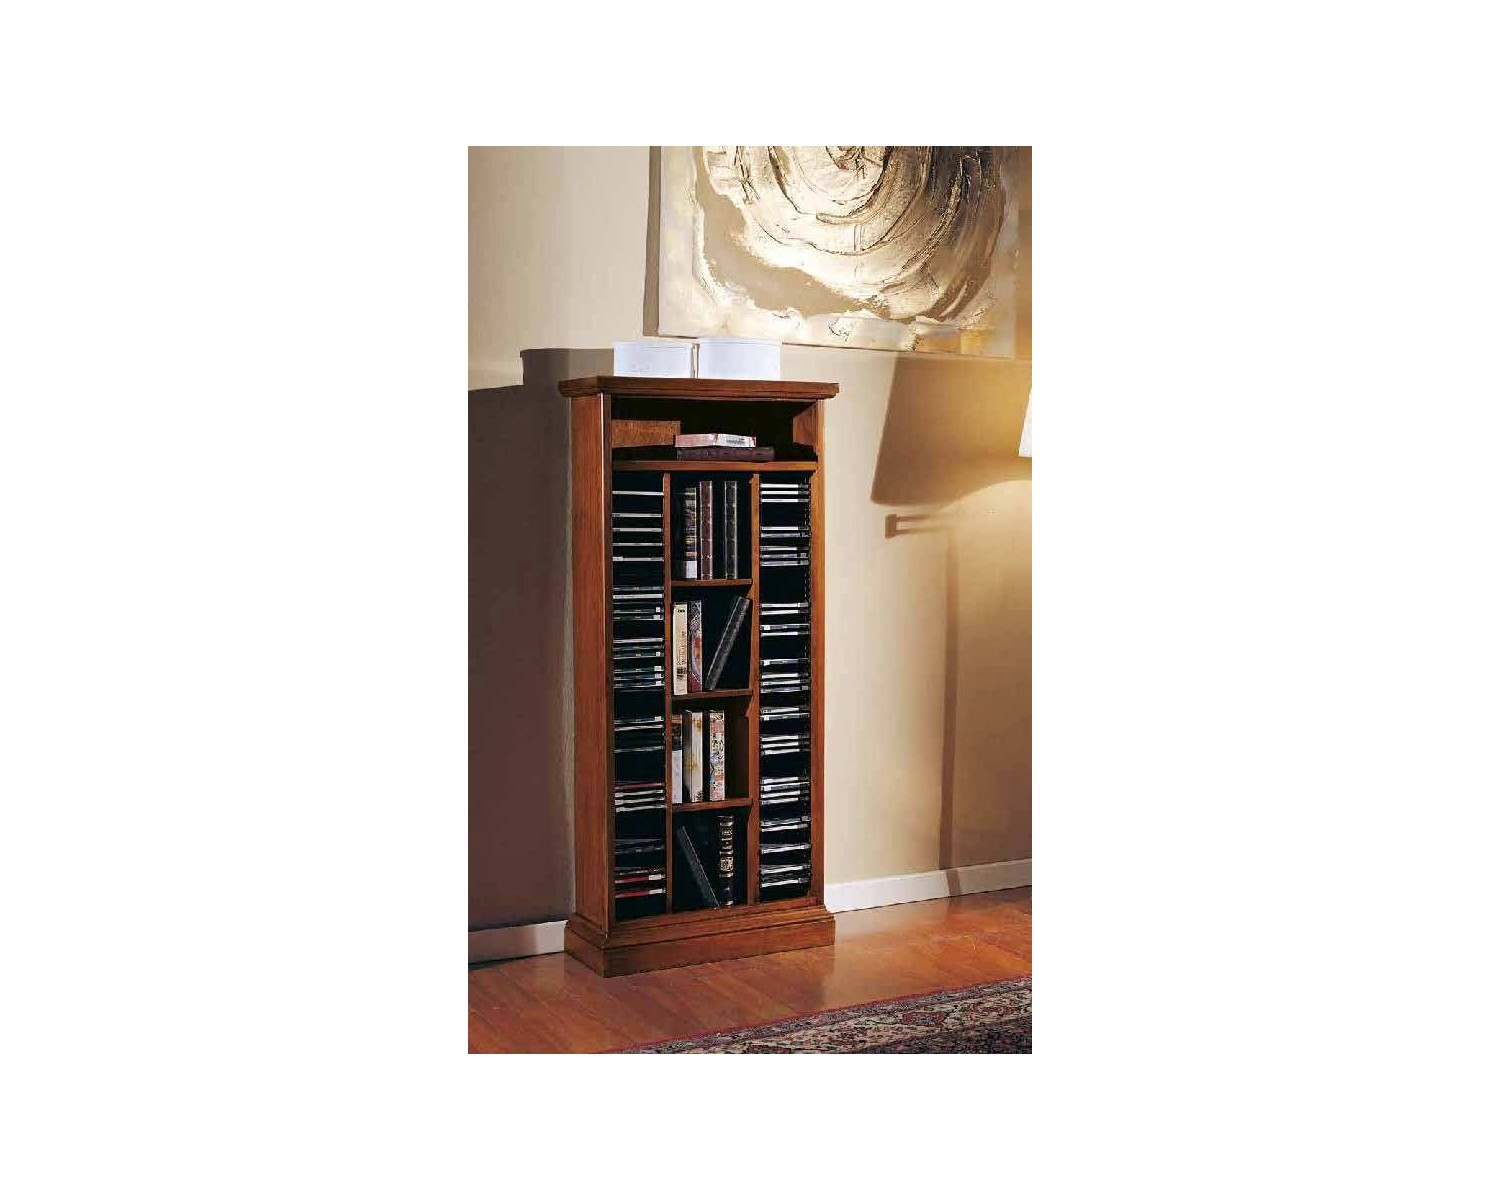 CD HOLDER IN WOOD L 58 W 23 H 129